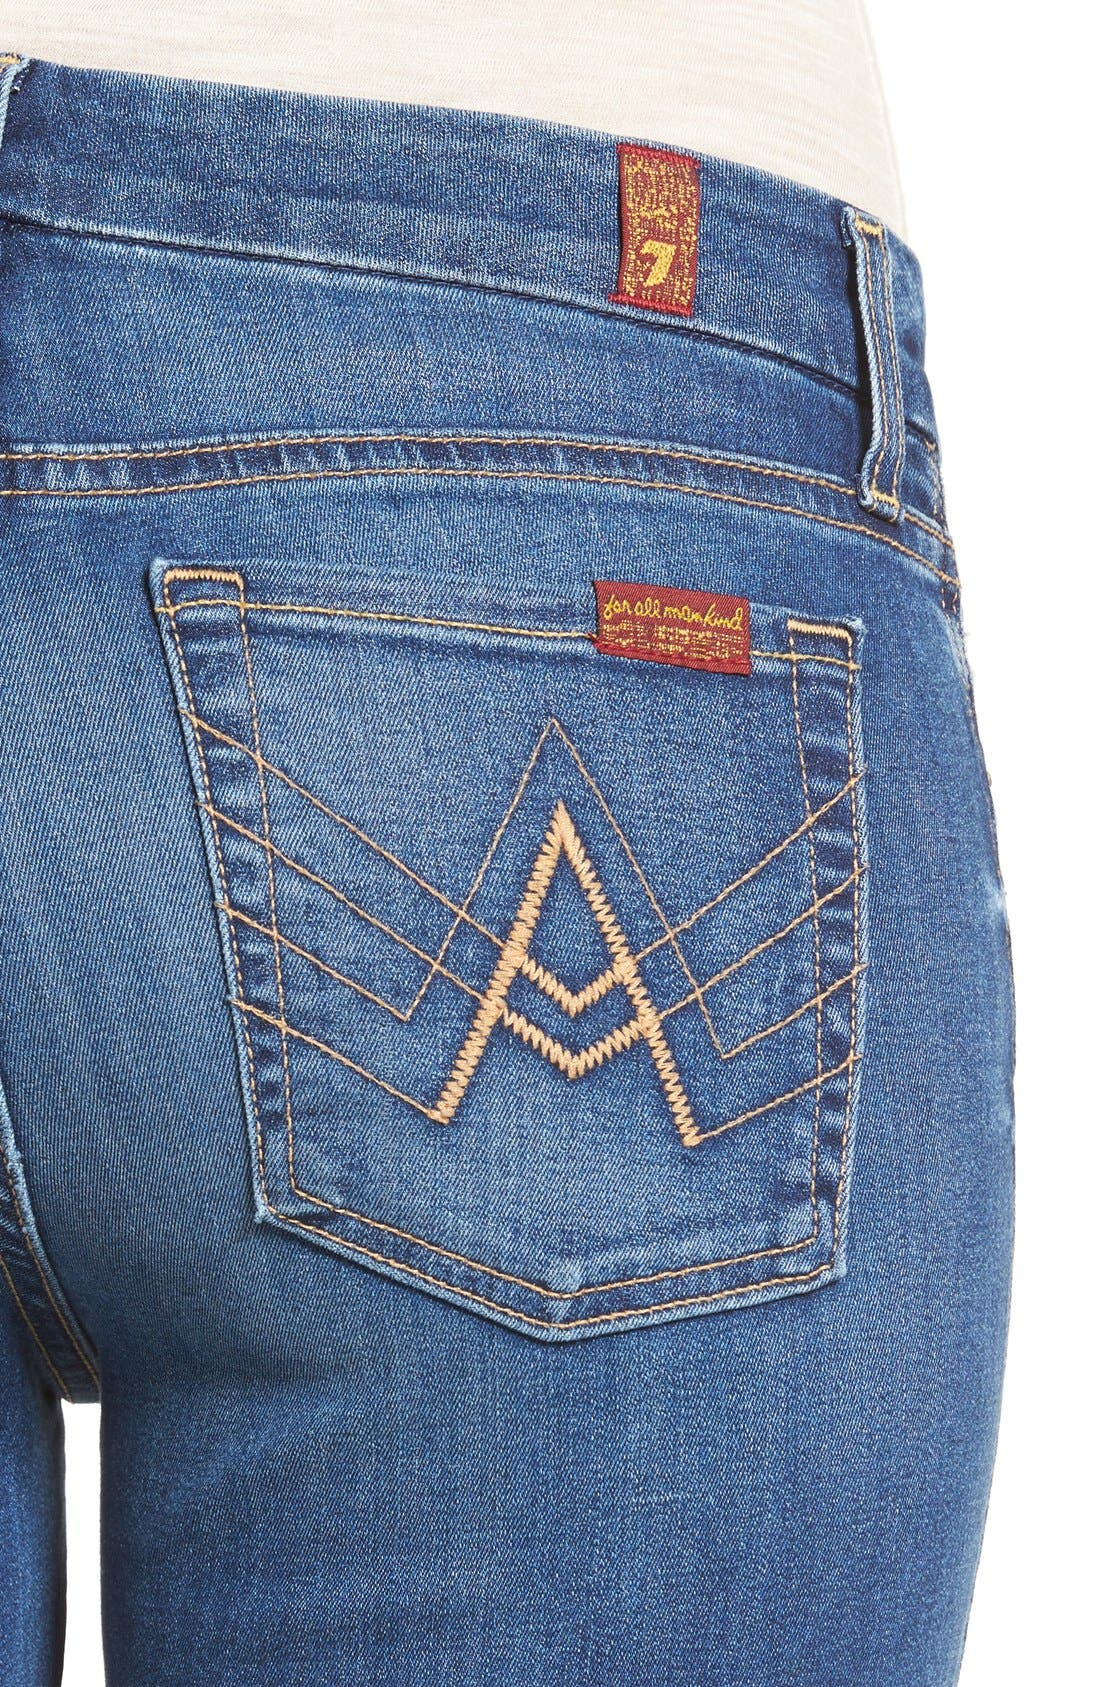 'b(air) - A Pocket' Flare Jeans,                             Alternate thumbnail 4, color,                             Reign